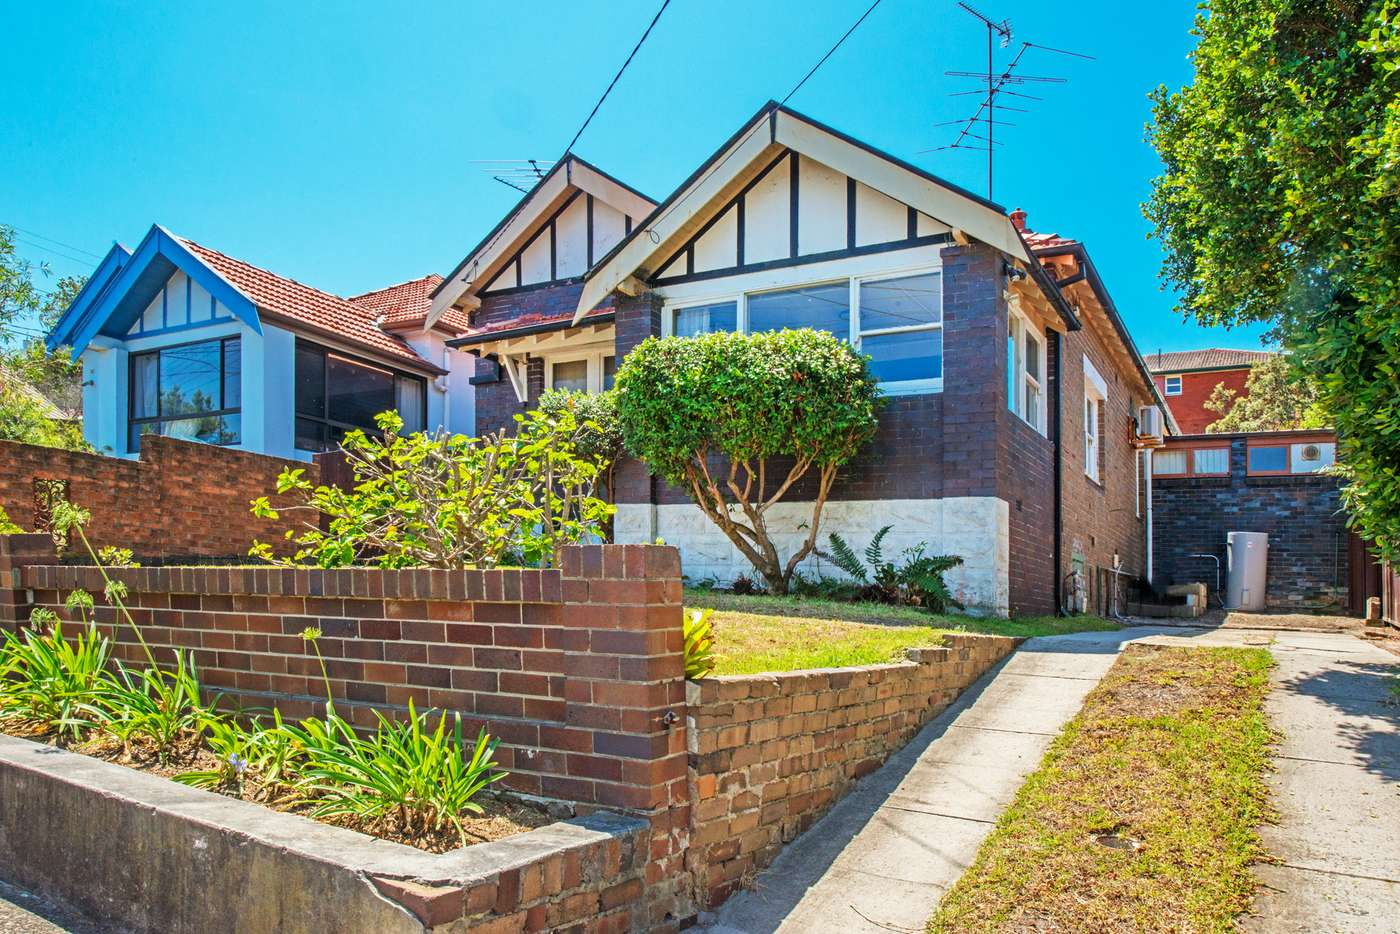 Main view of Homely house listing, 140 Duncan Street, Maroubra NSW 2035